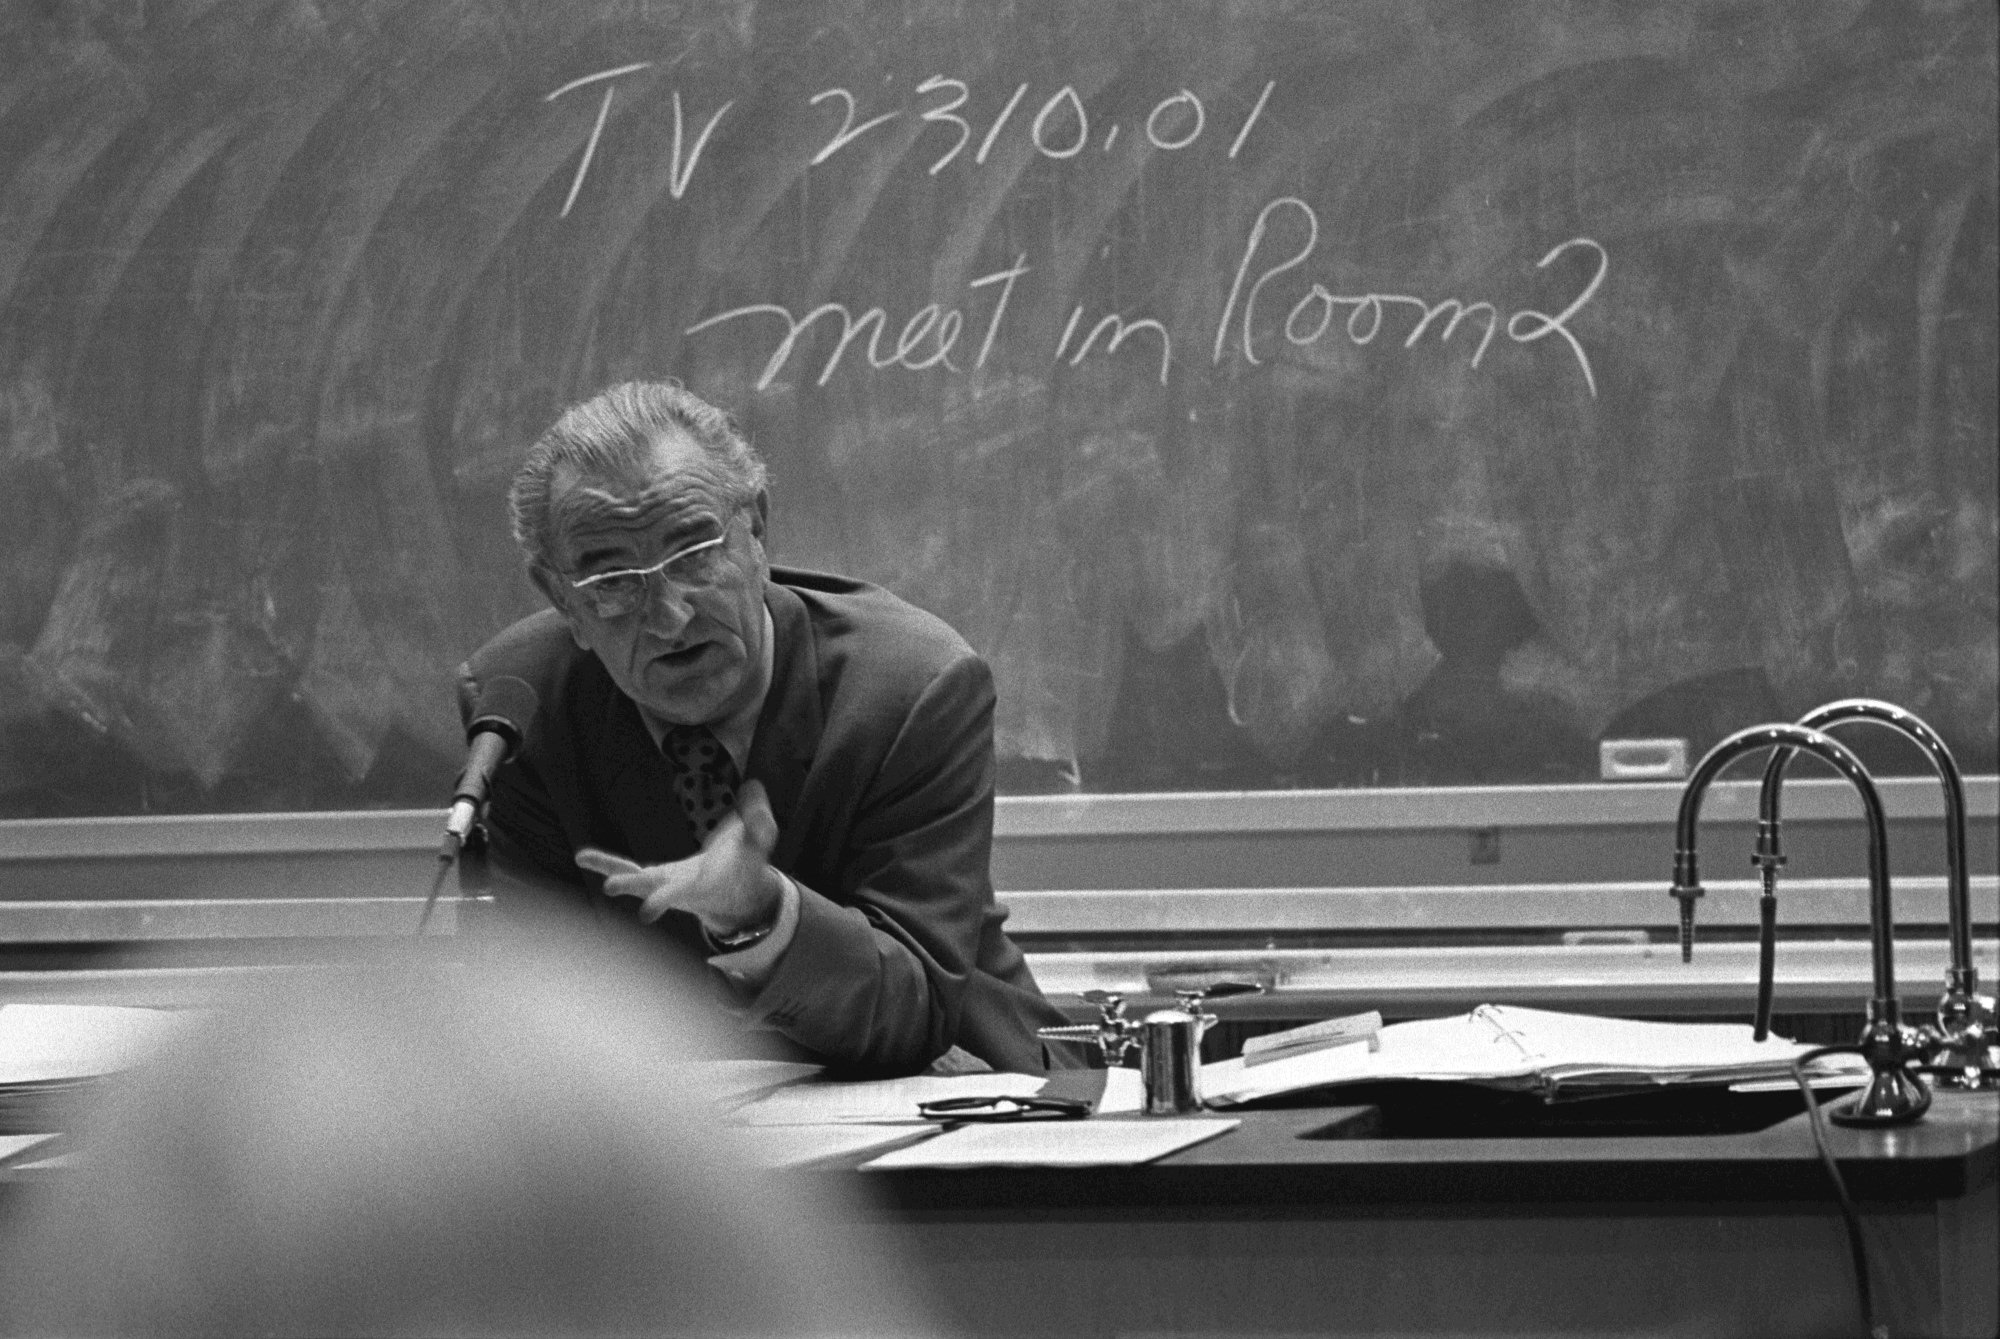 In 1970, Lyndon Johnson met with students (at the University of Texas)